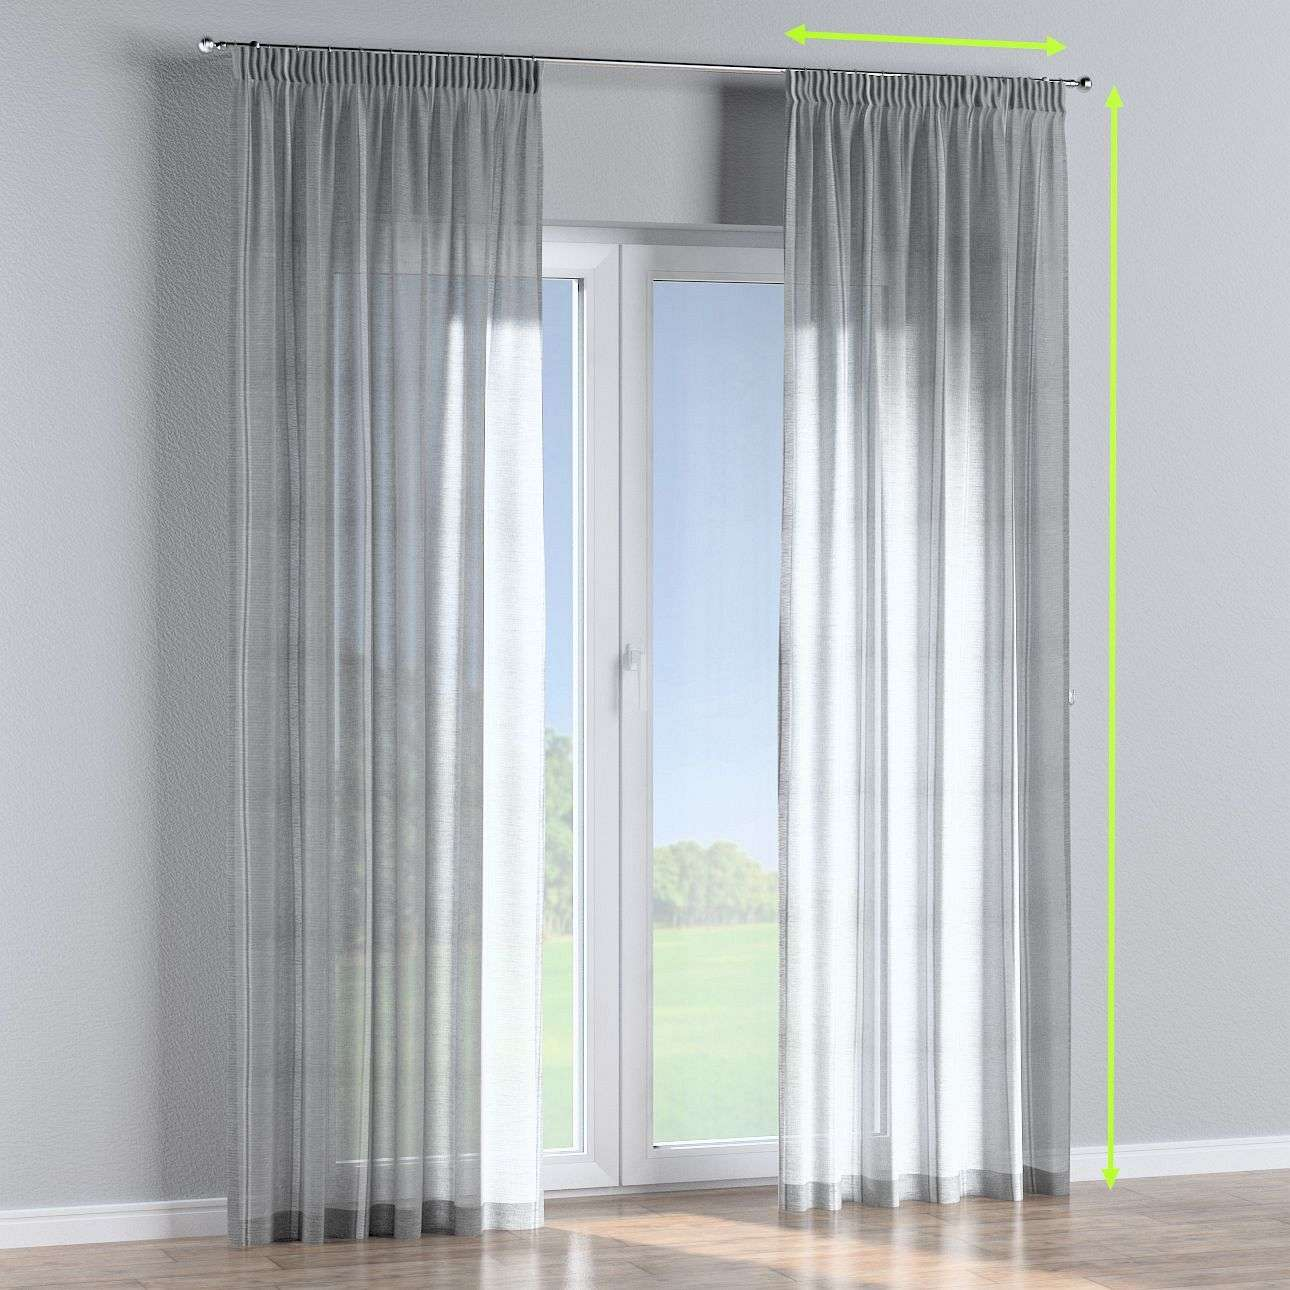 Pencil pleat curtains in collection Romantica, fabric: 141-31